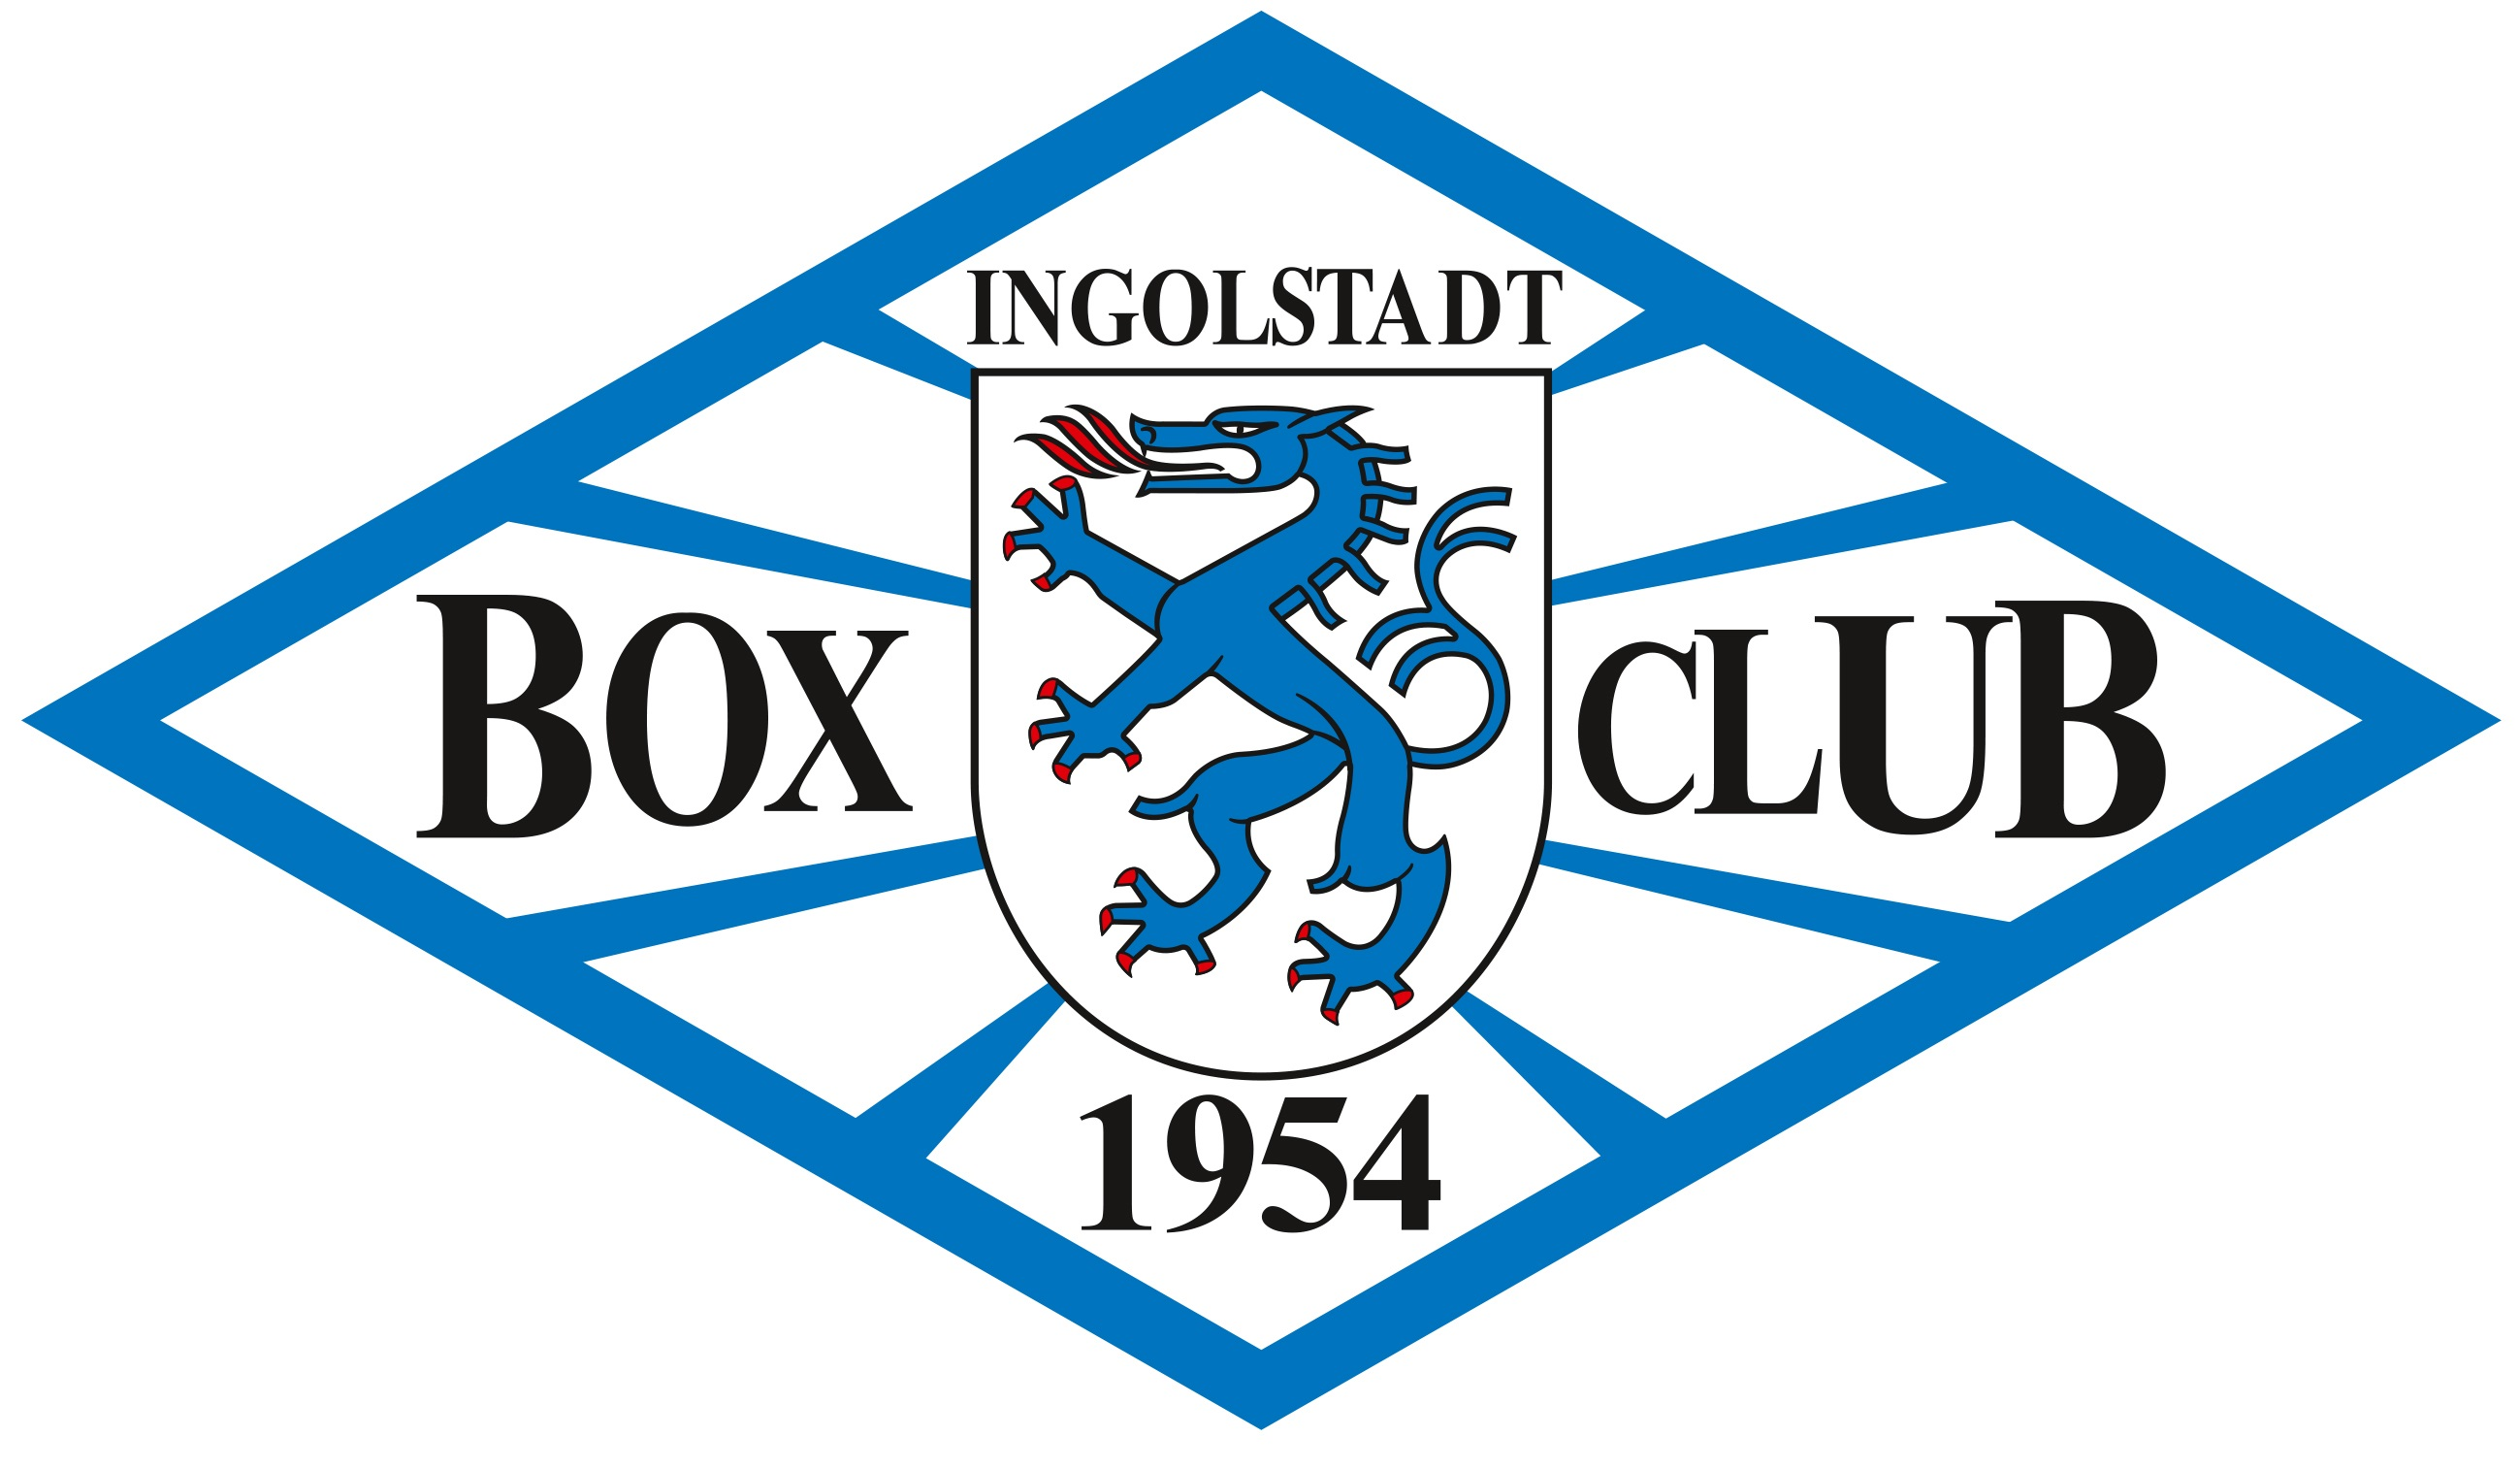 Box-Club Ingolstadt